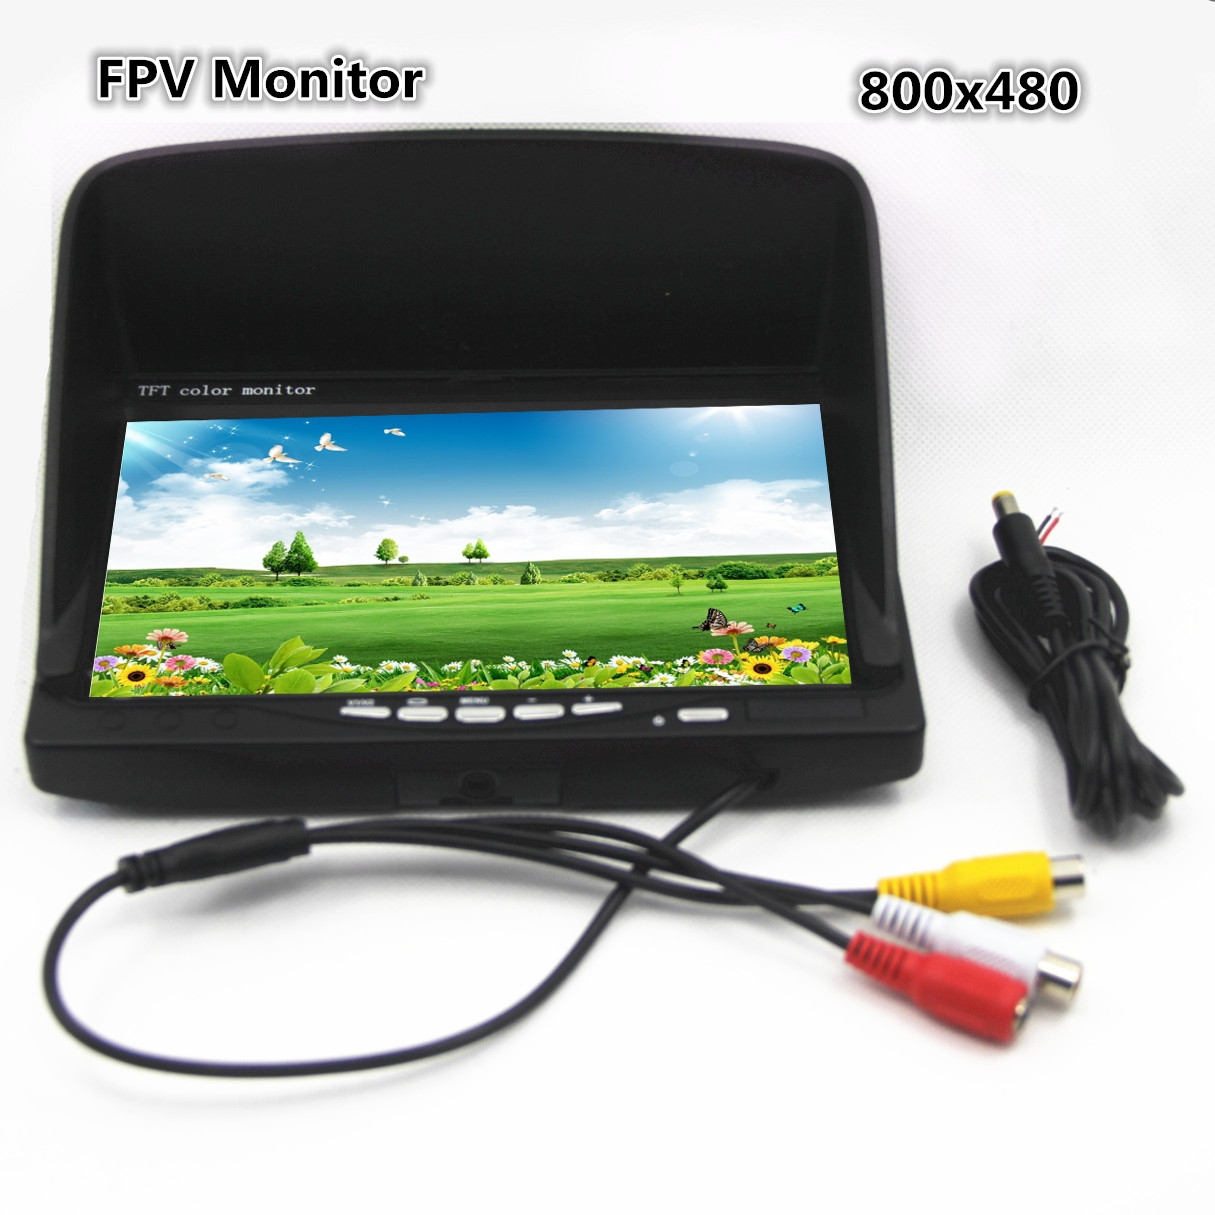 FPV Monitor 7 inch TFT LCD Monitor Photography HD 800x480 Blue Screen w Sun Shade for fpv monitor 7 inch tft lcd monitor photography hd 800x480 blue tft color monitor wiring diagram at bakdesigns.co